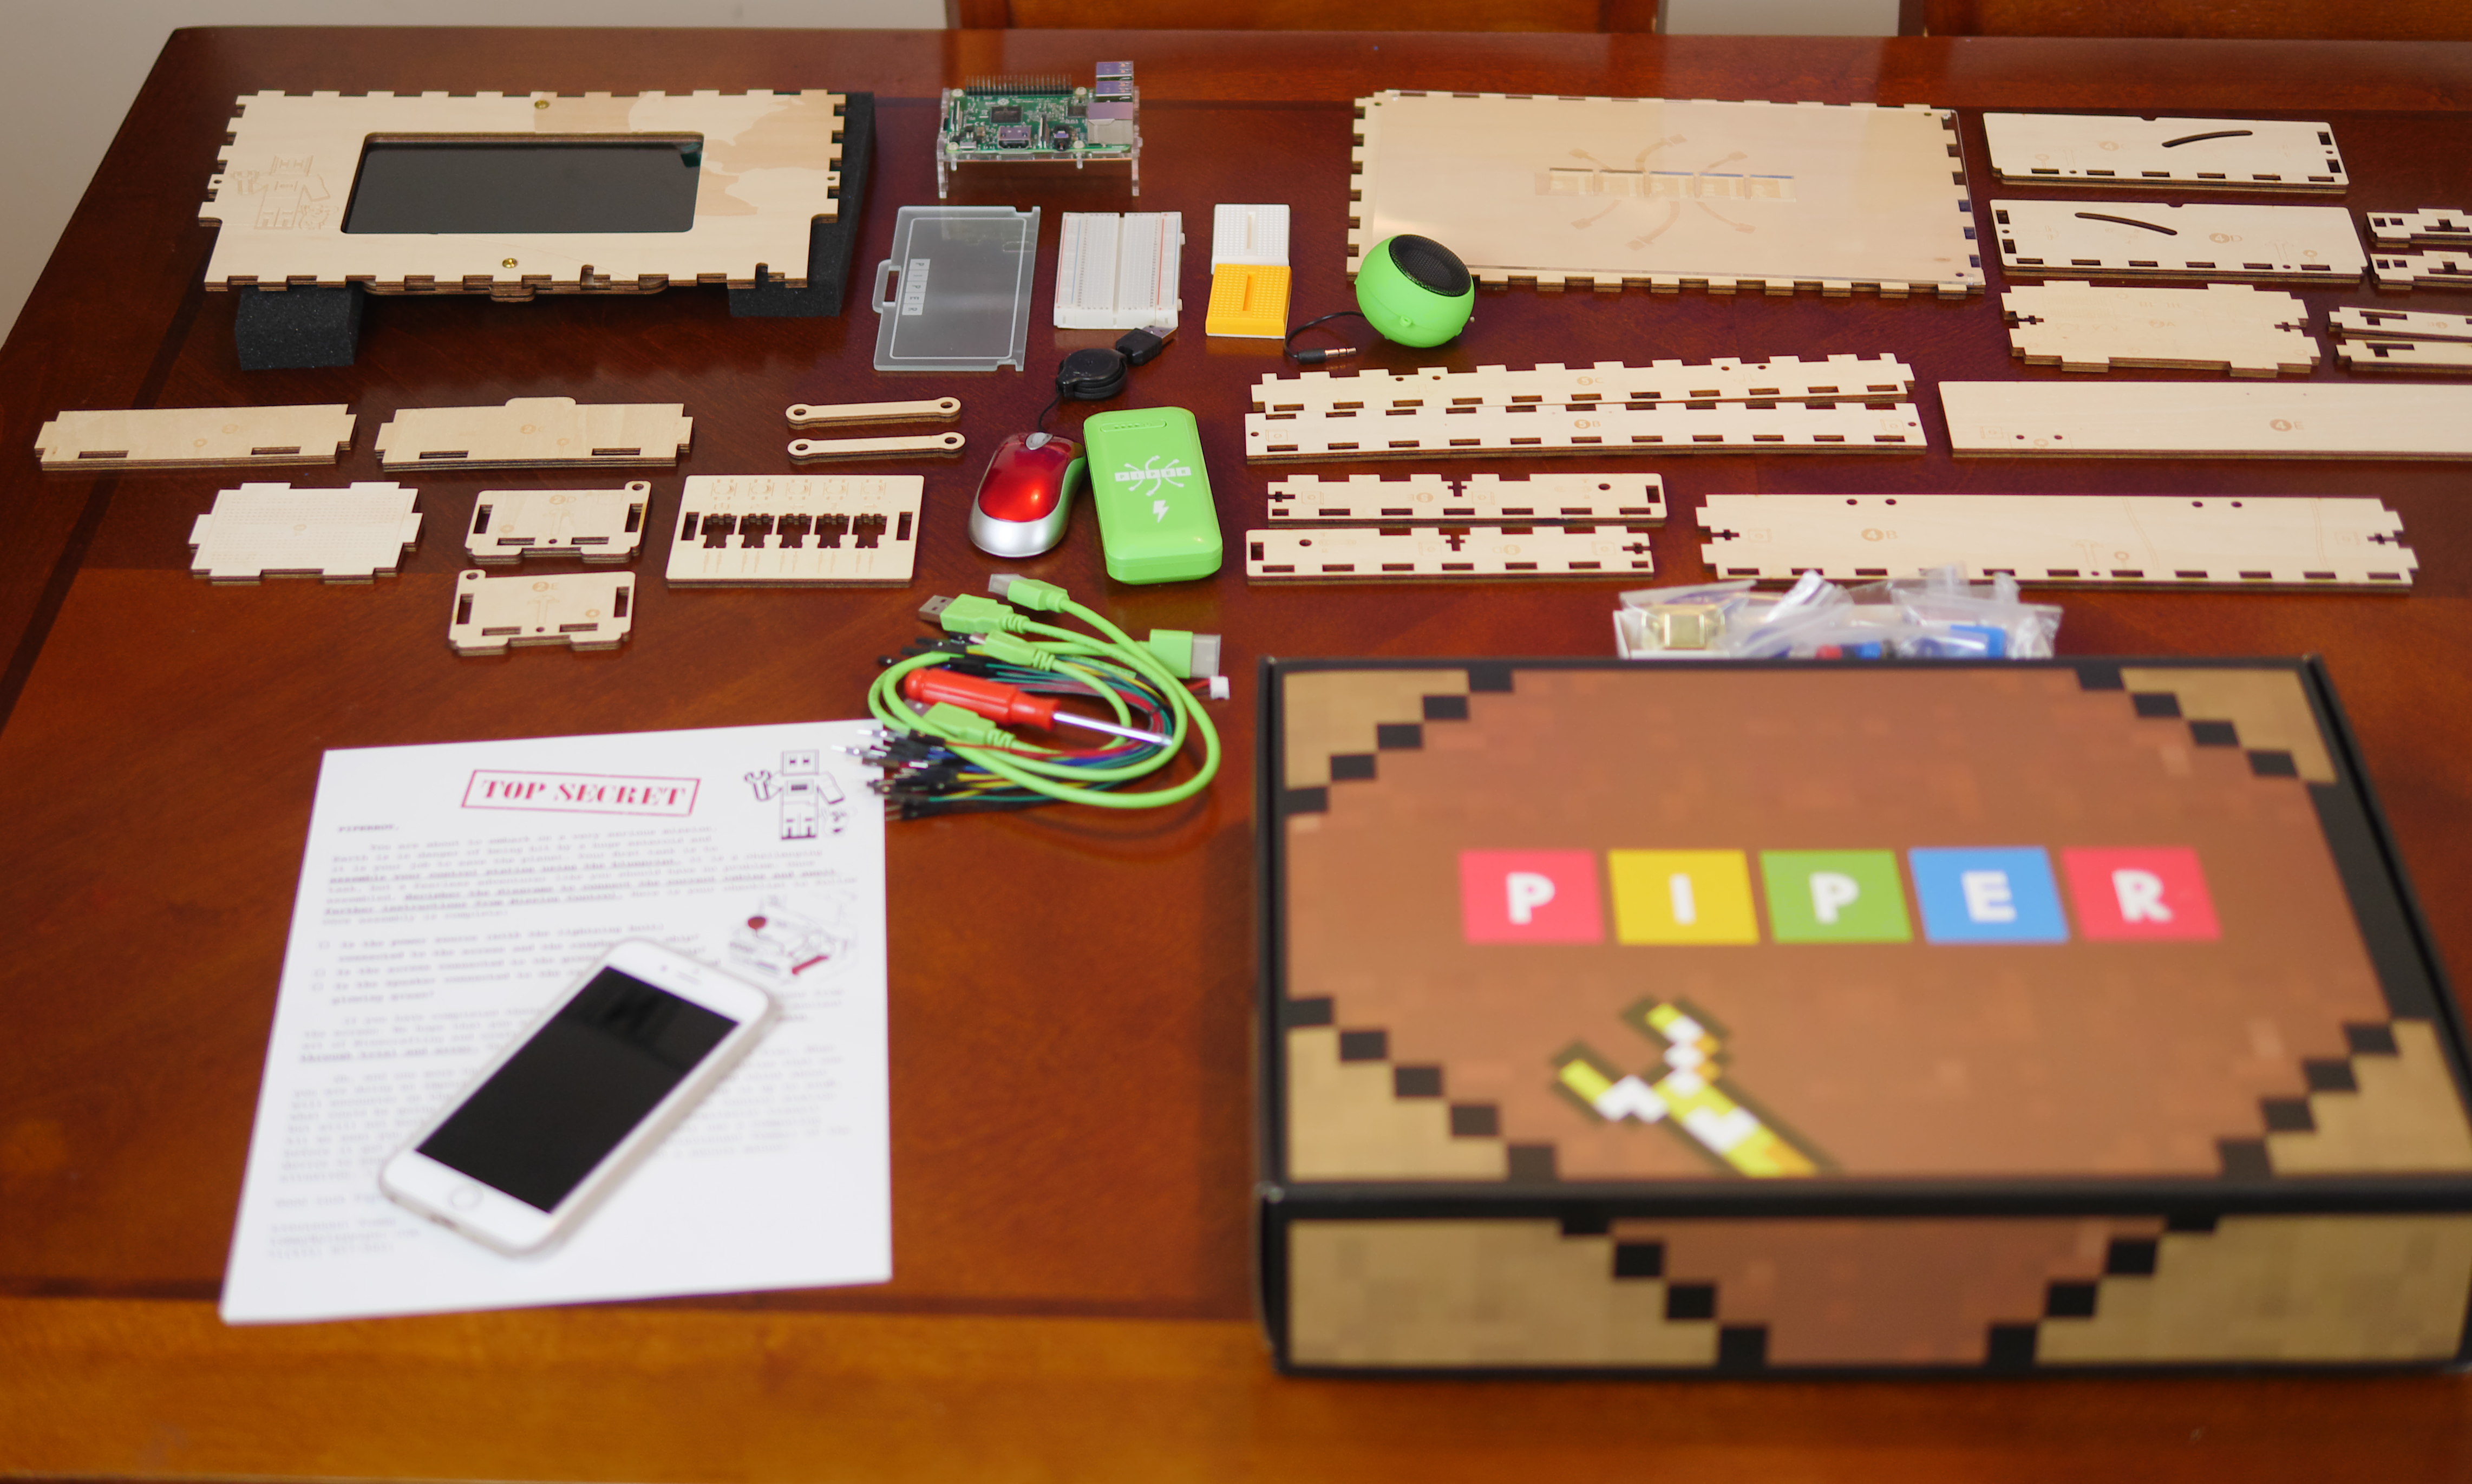 Children Build The Piper Computer By Putting Each Individual Piece